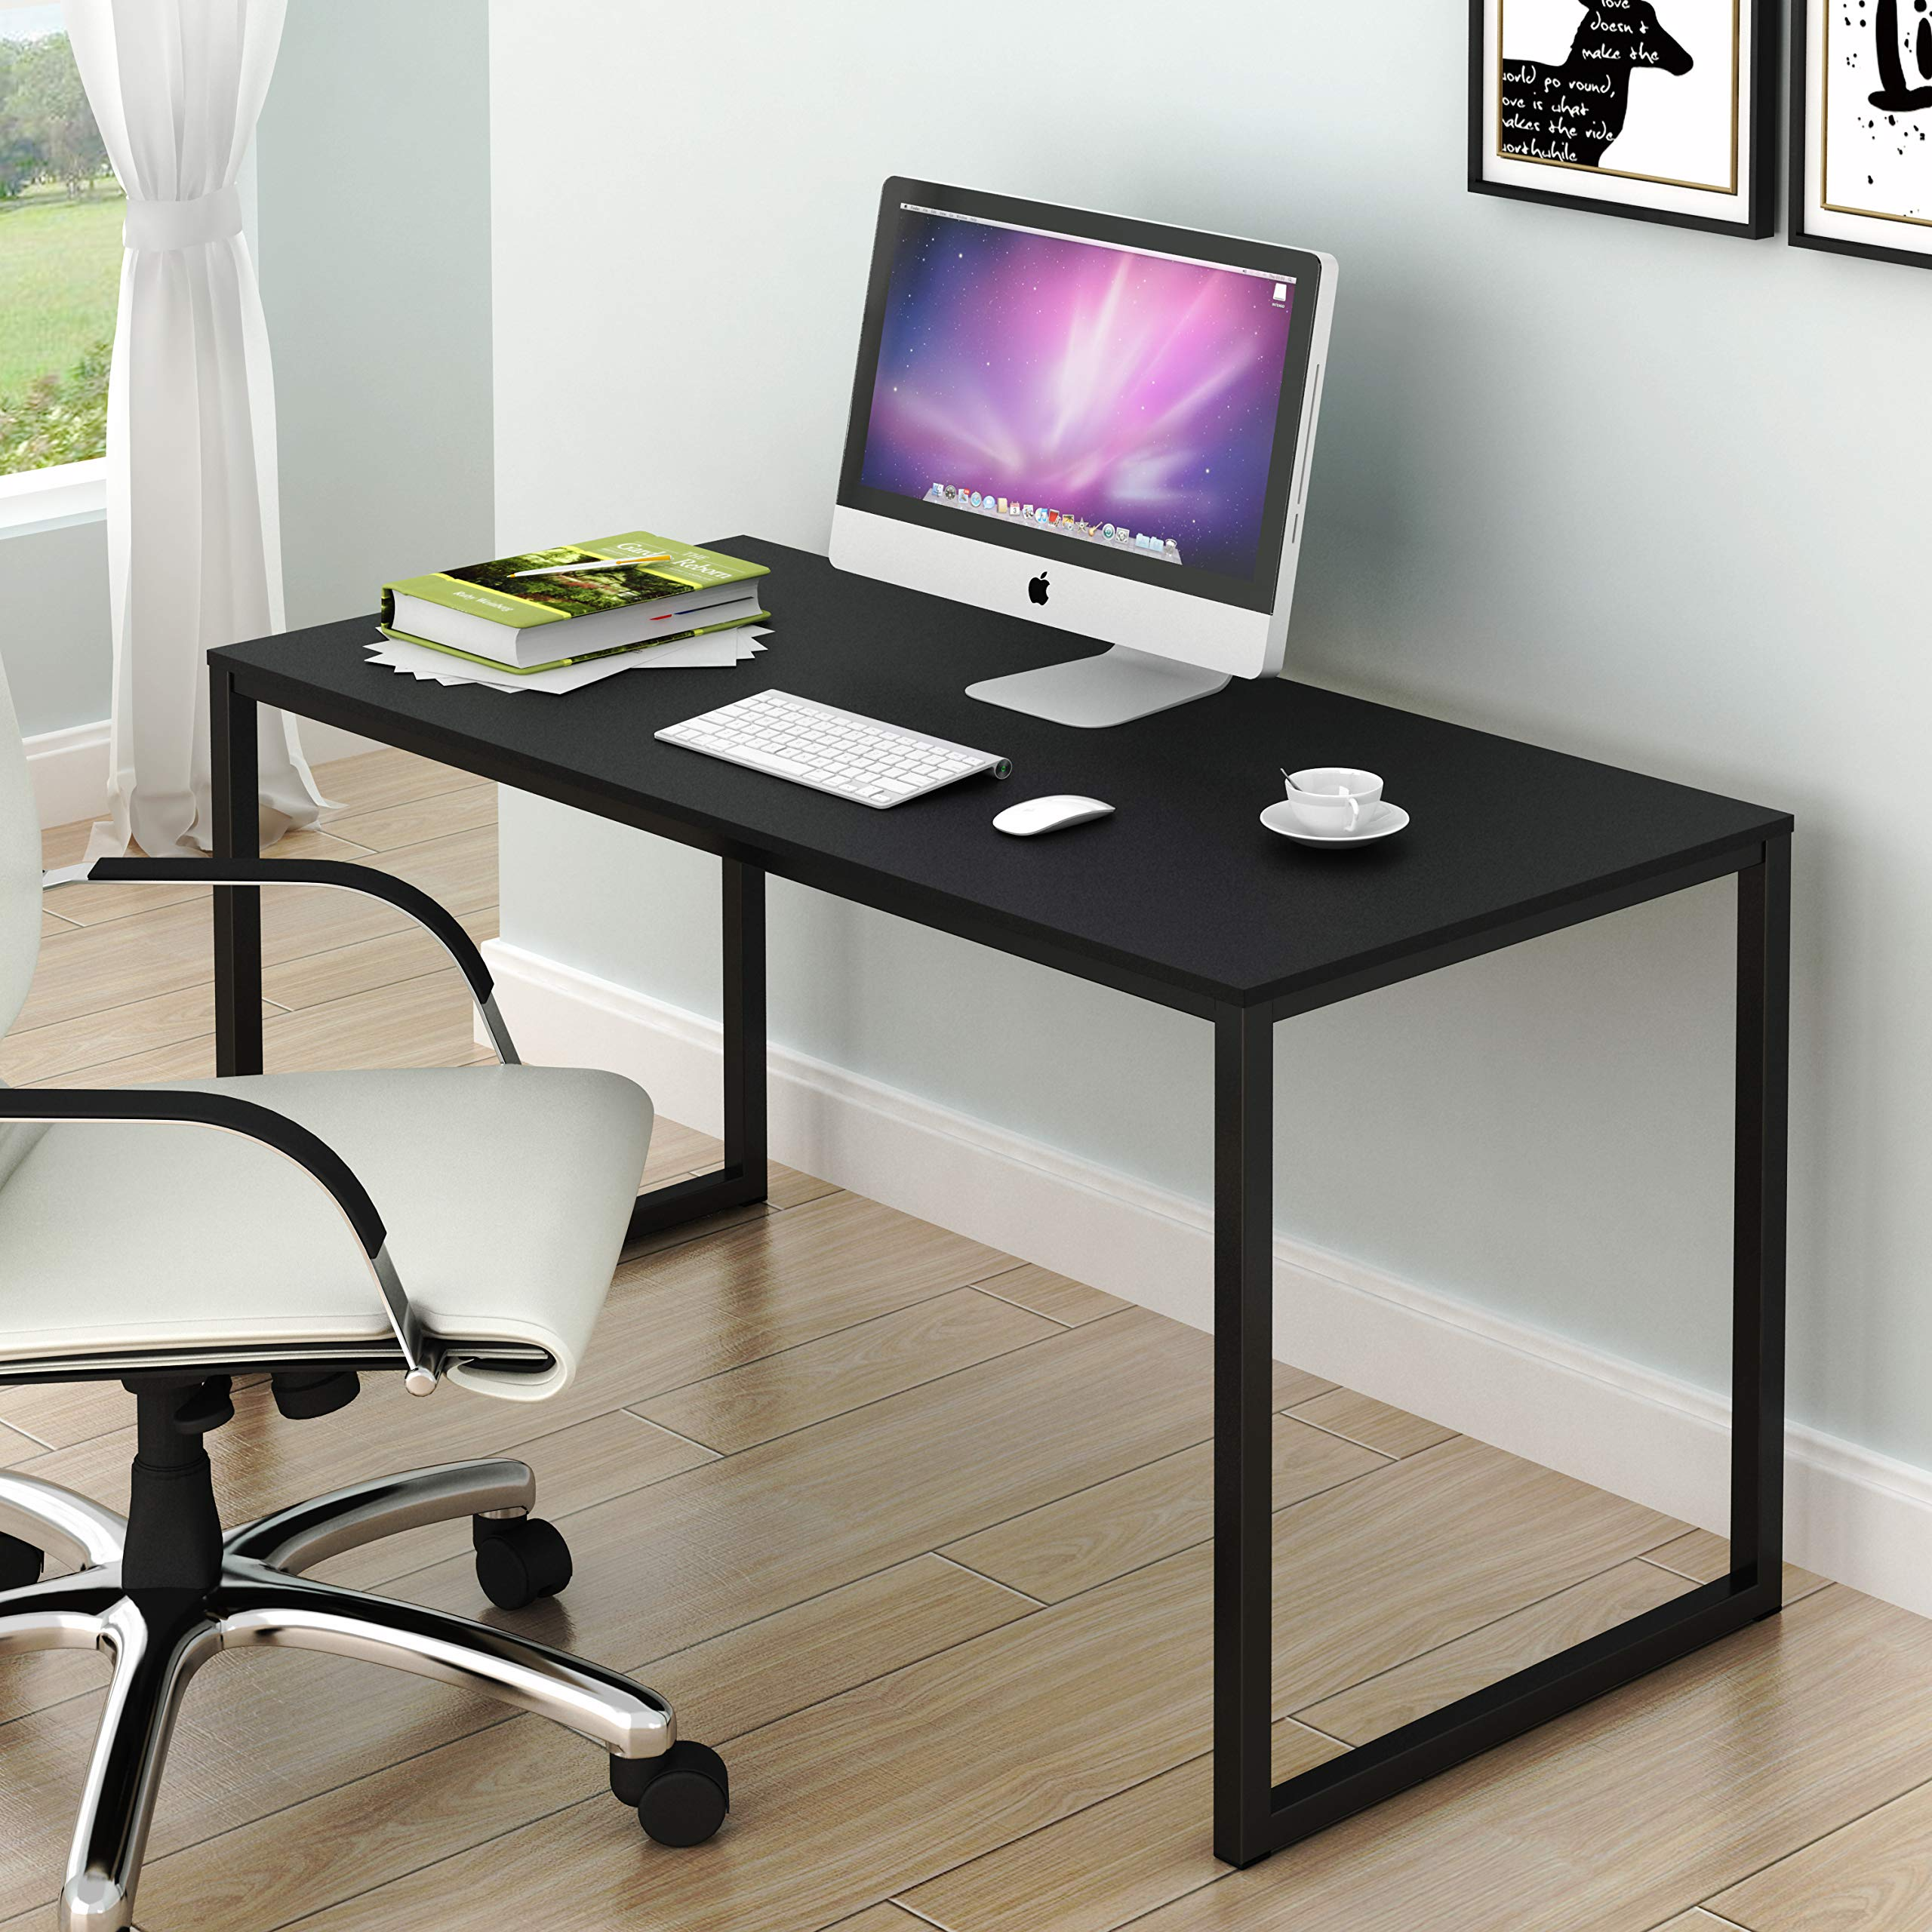 SHW Home Office 48-Inch Computer Desk, Black by SHW